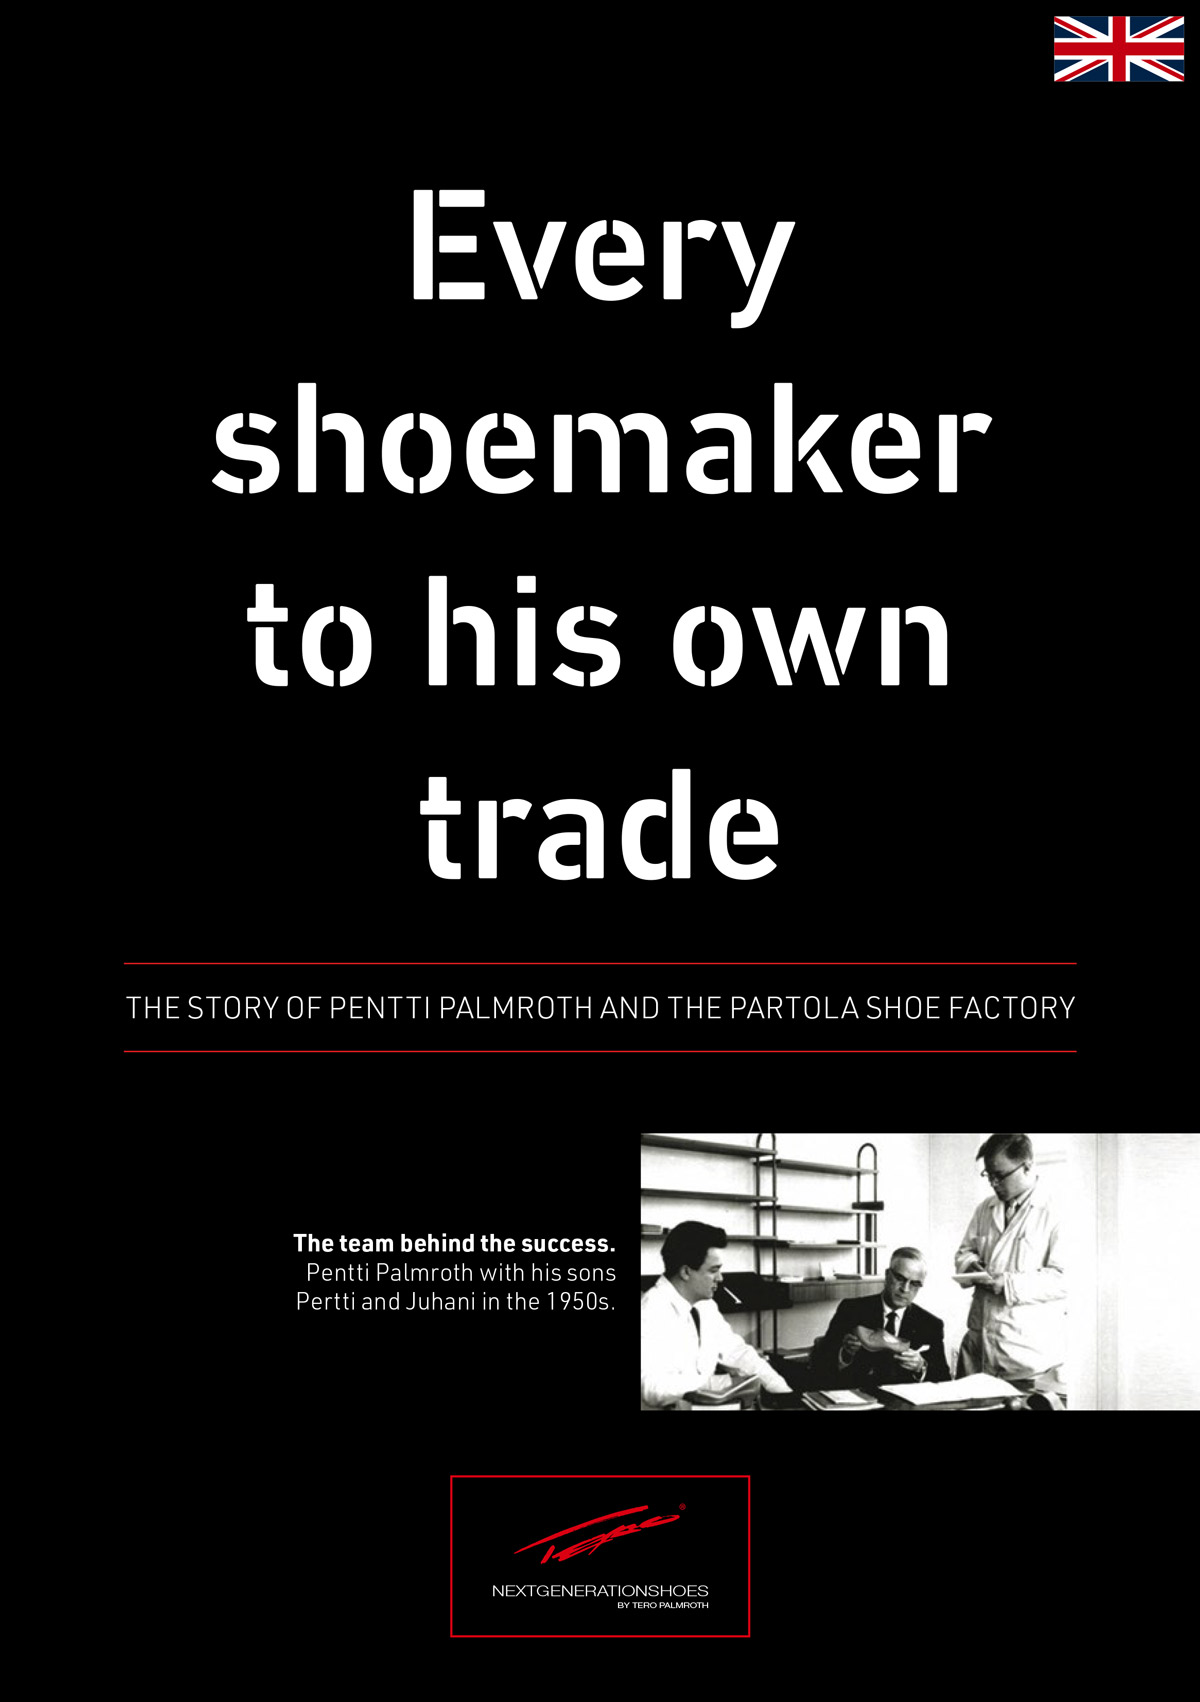 Every shoemaker for it's own trade